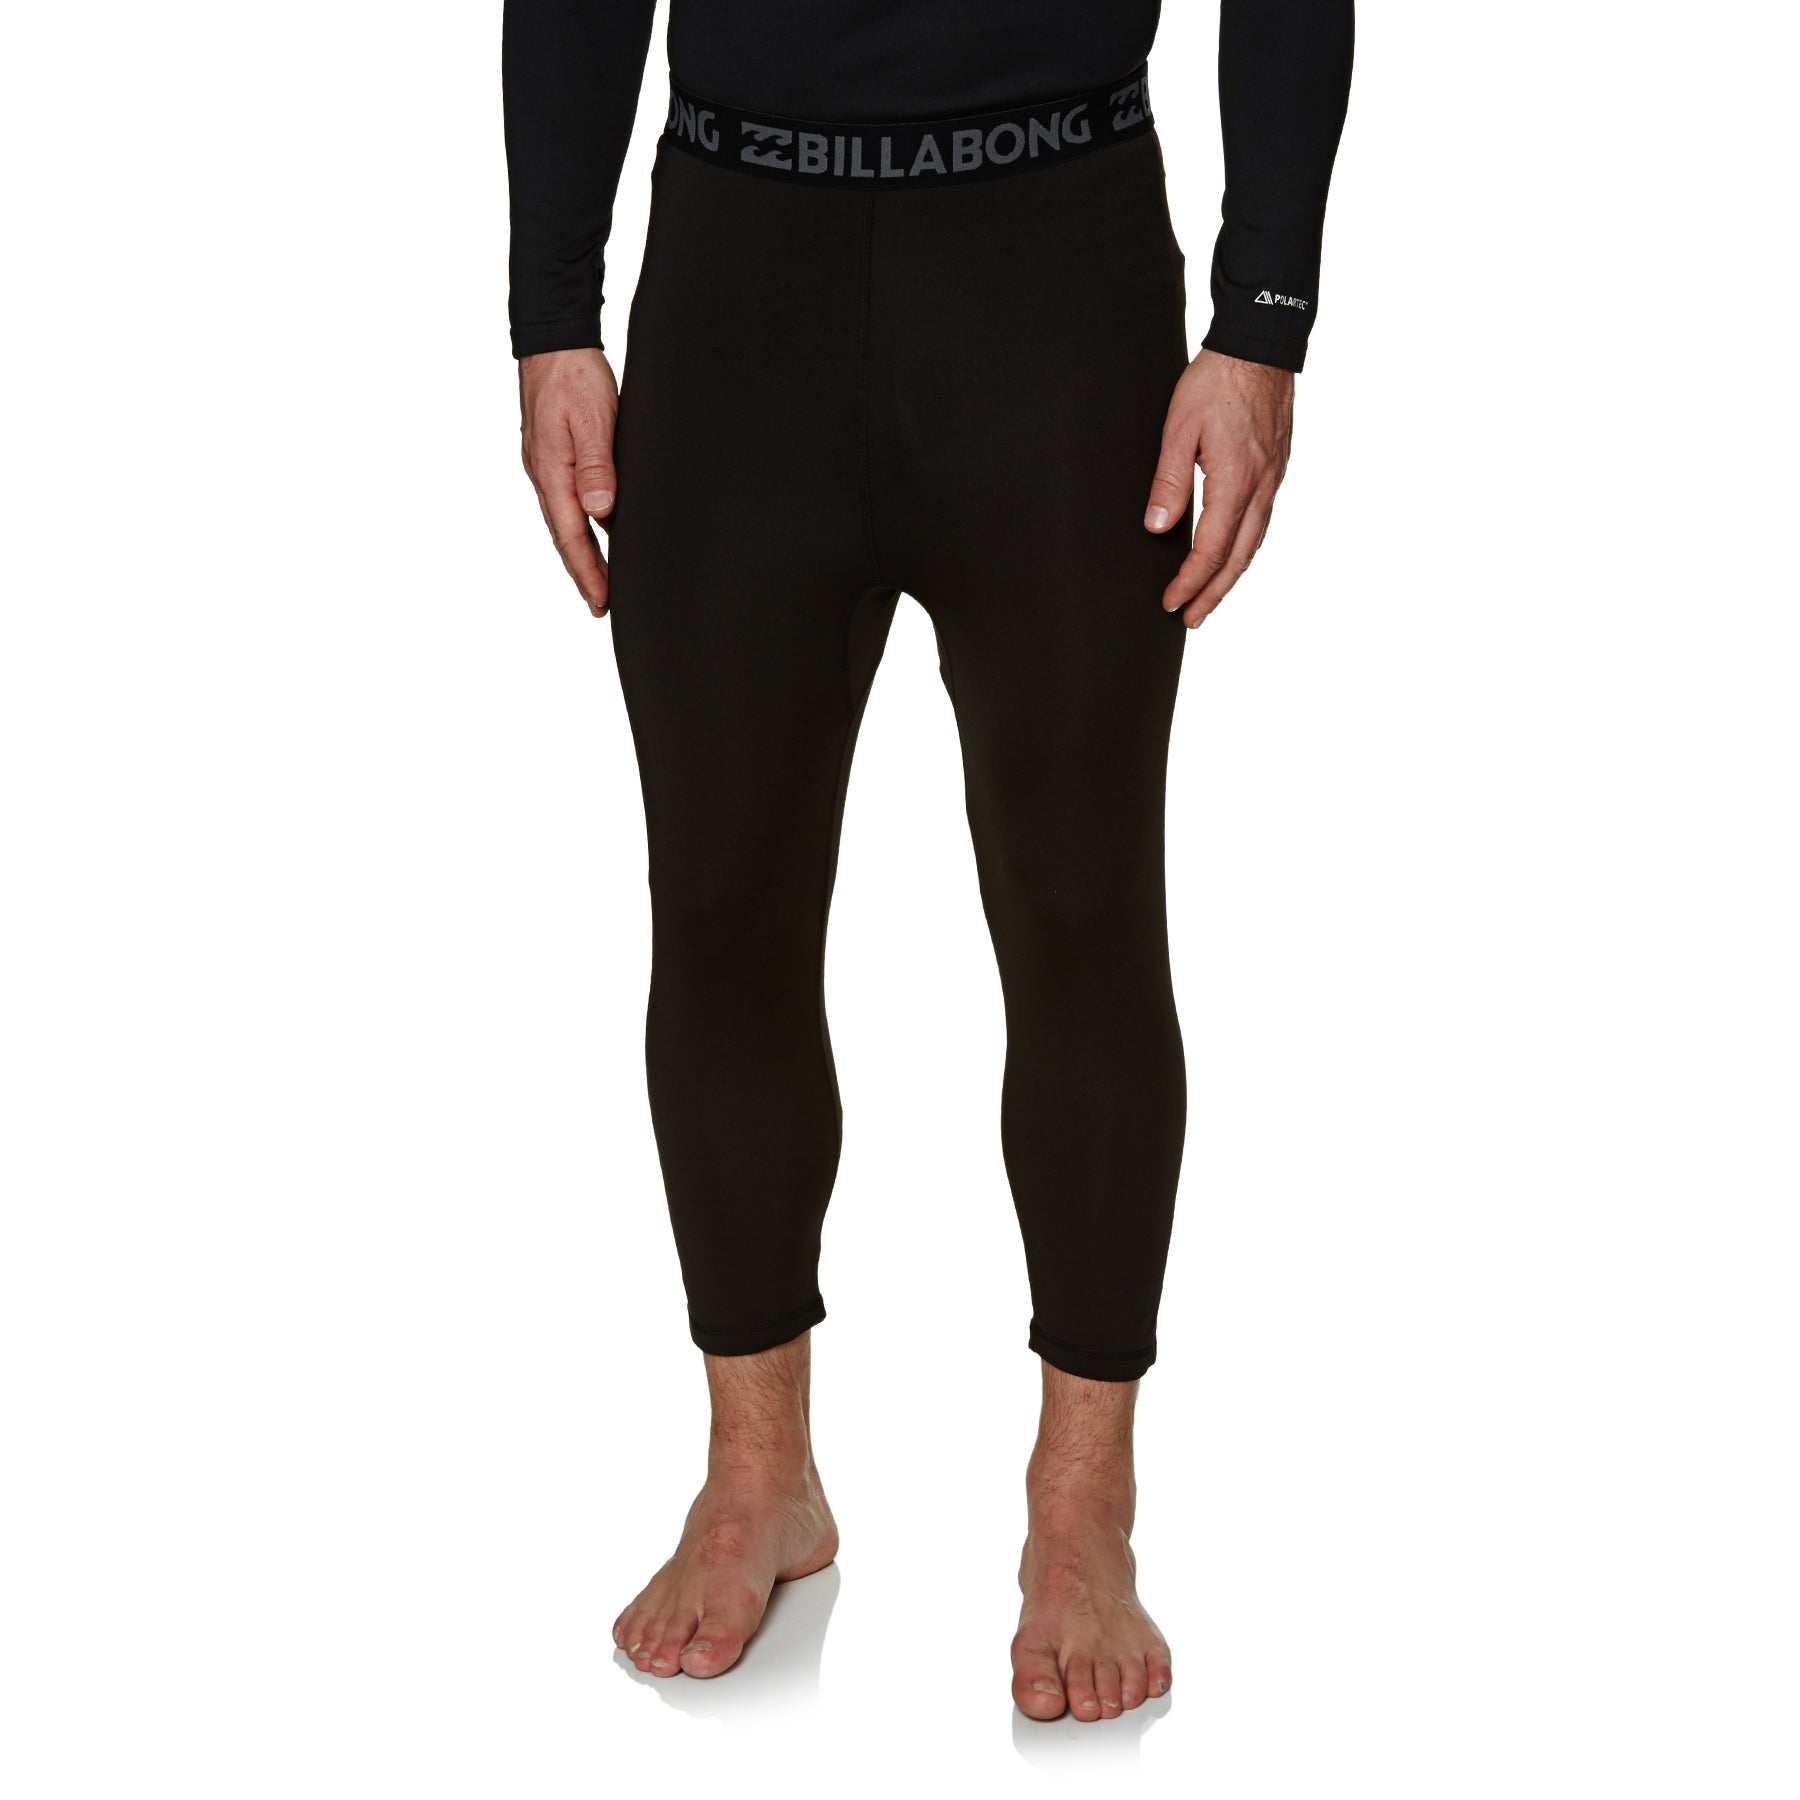 Billabong Under Pant Operator Technical Base Layer Leggings - Black